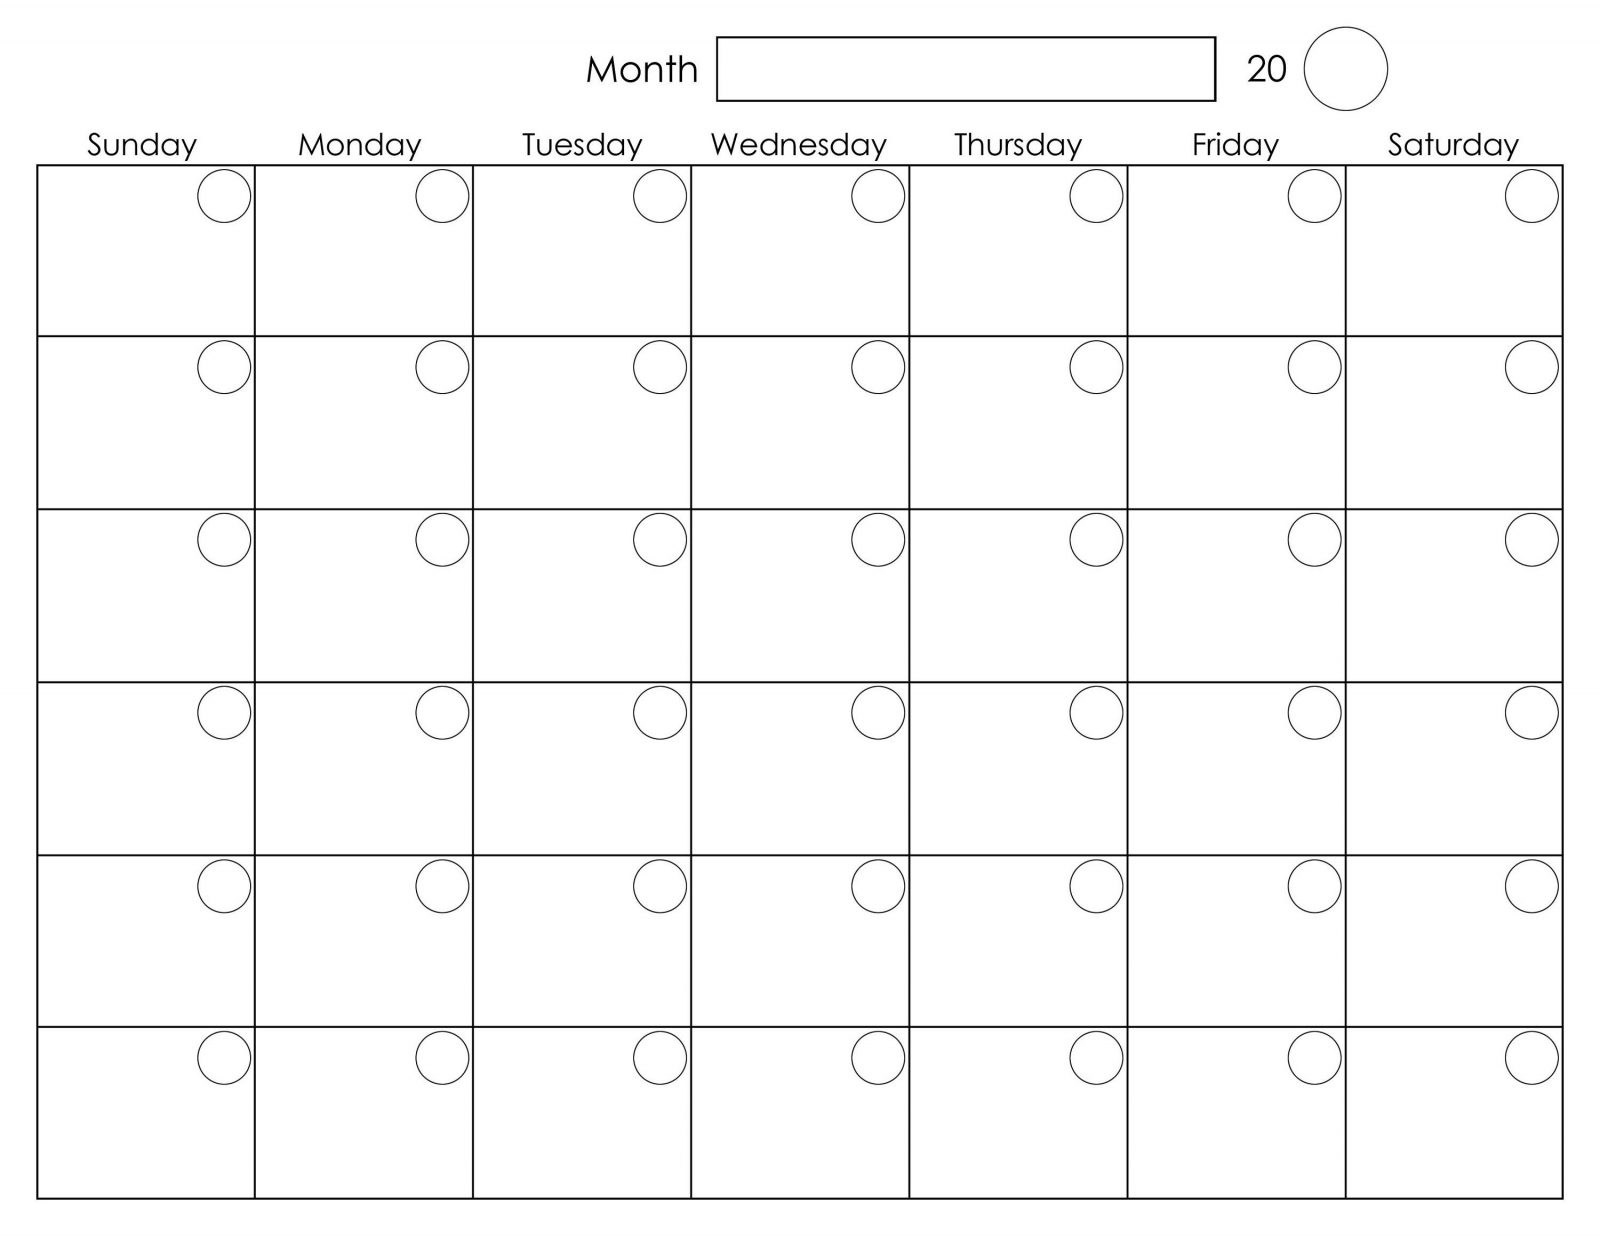 Blank Monthly Planner Starts On Monday | Example Calendar